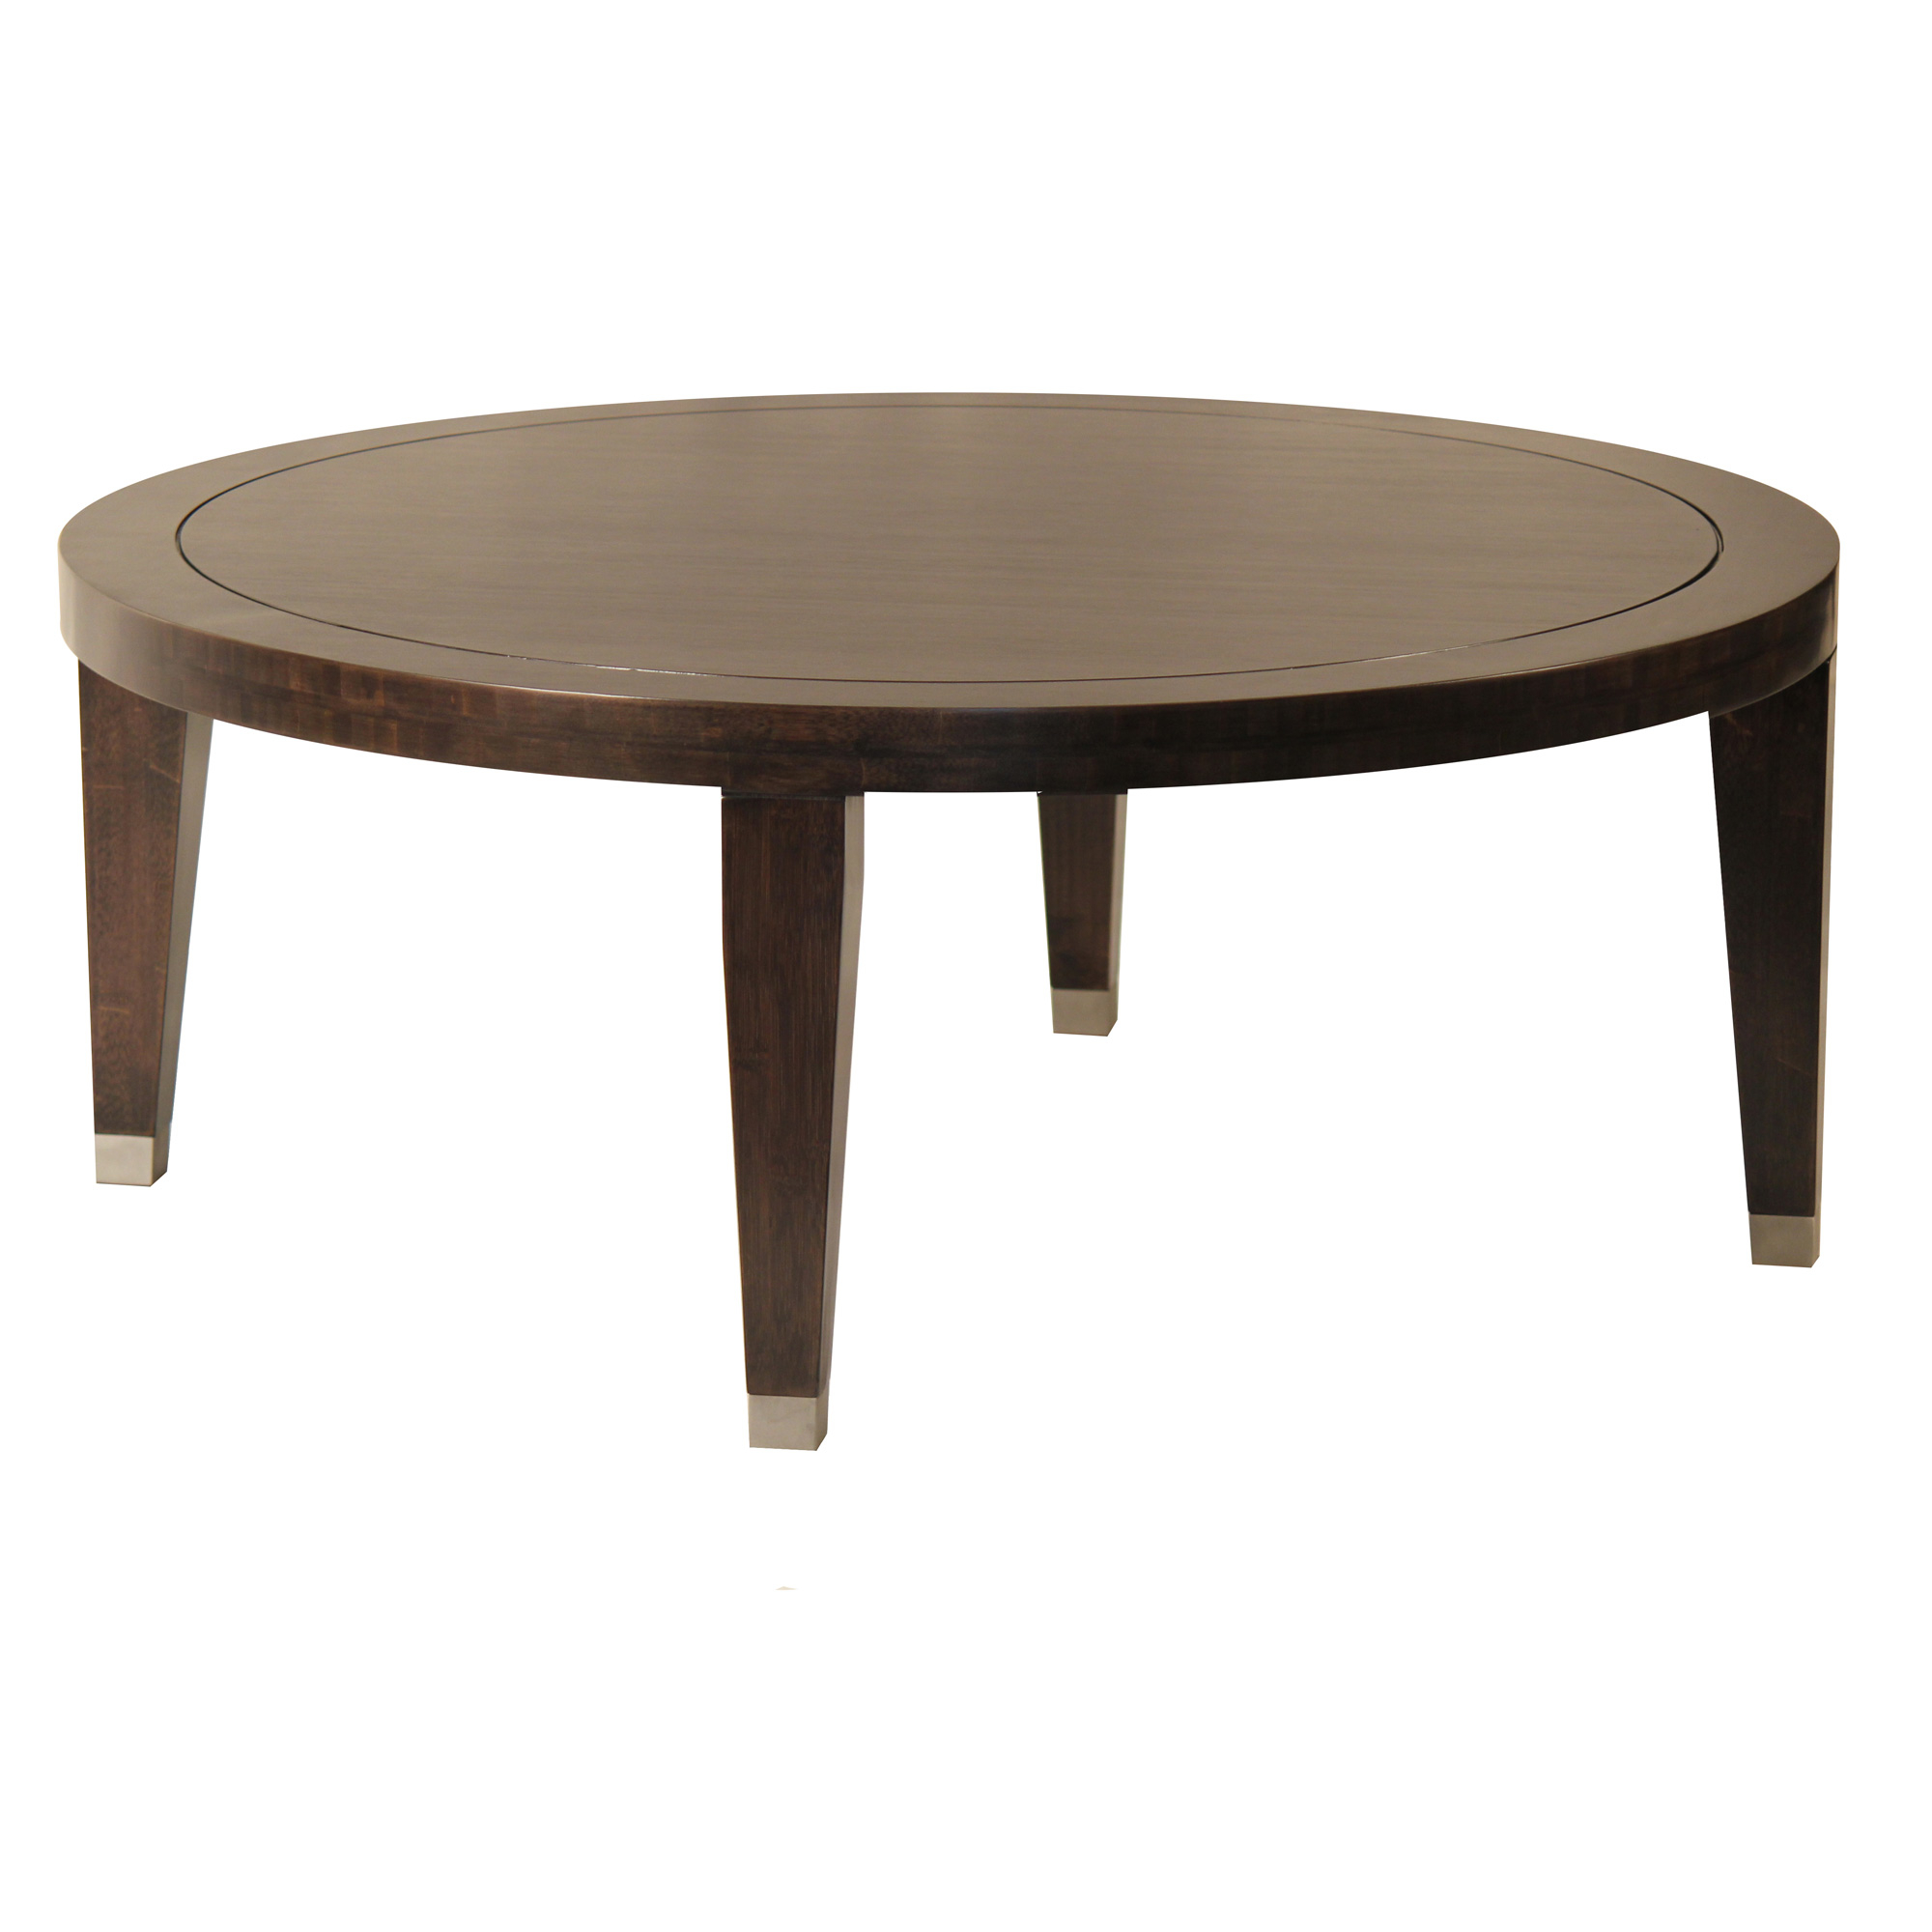 Maria Yee Calistoga Round Cocktail Table